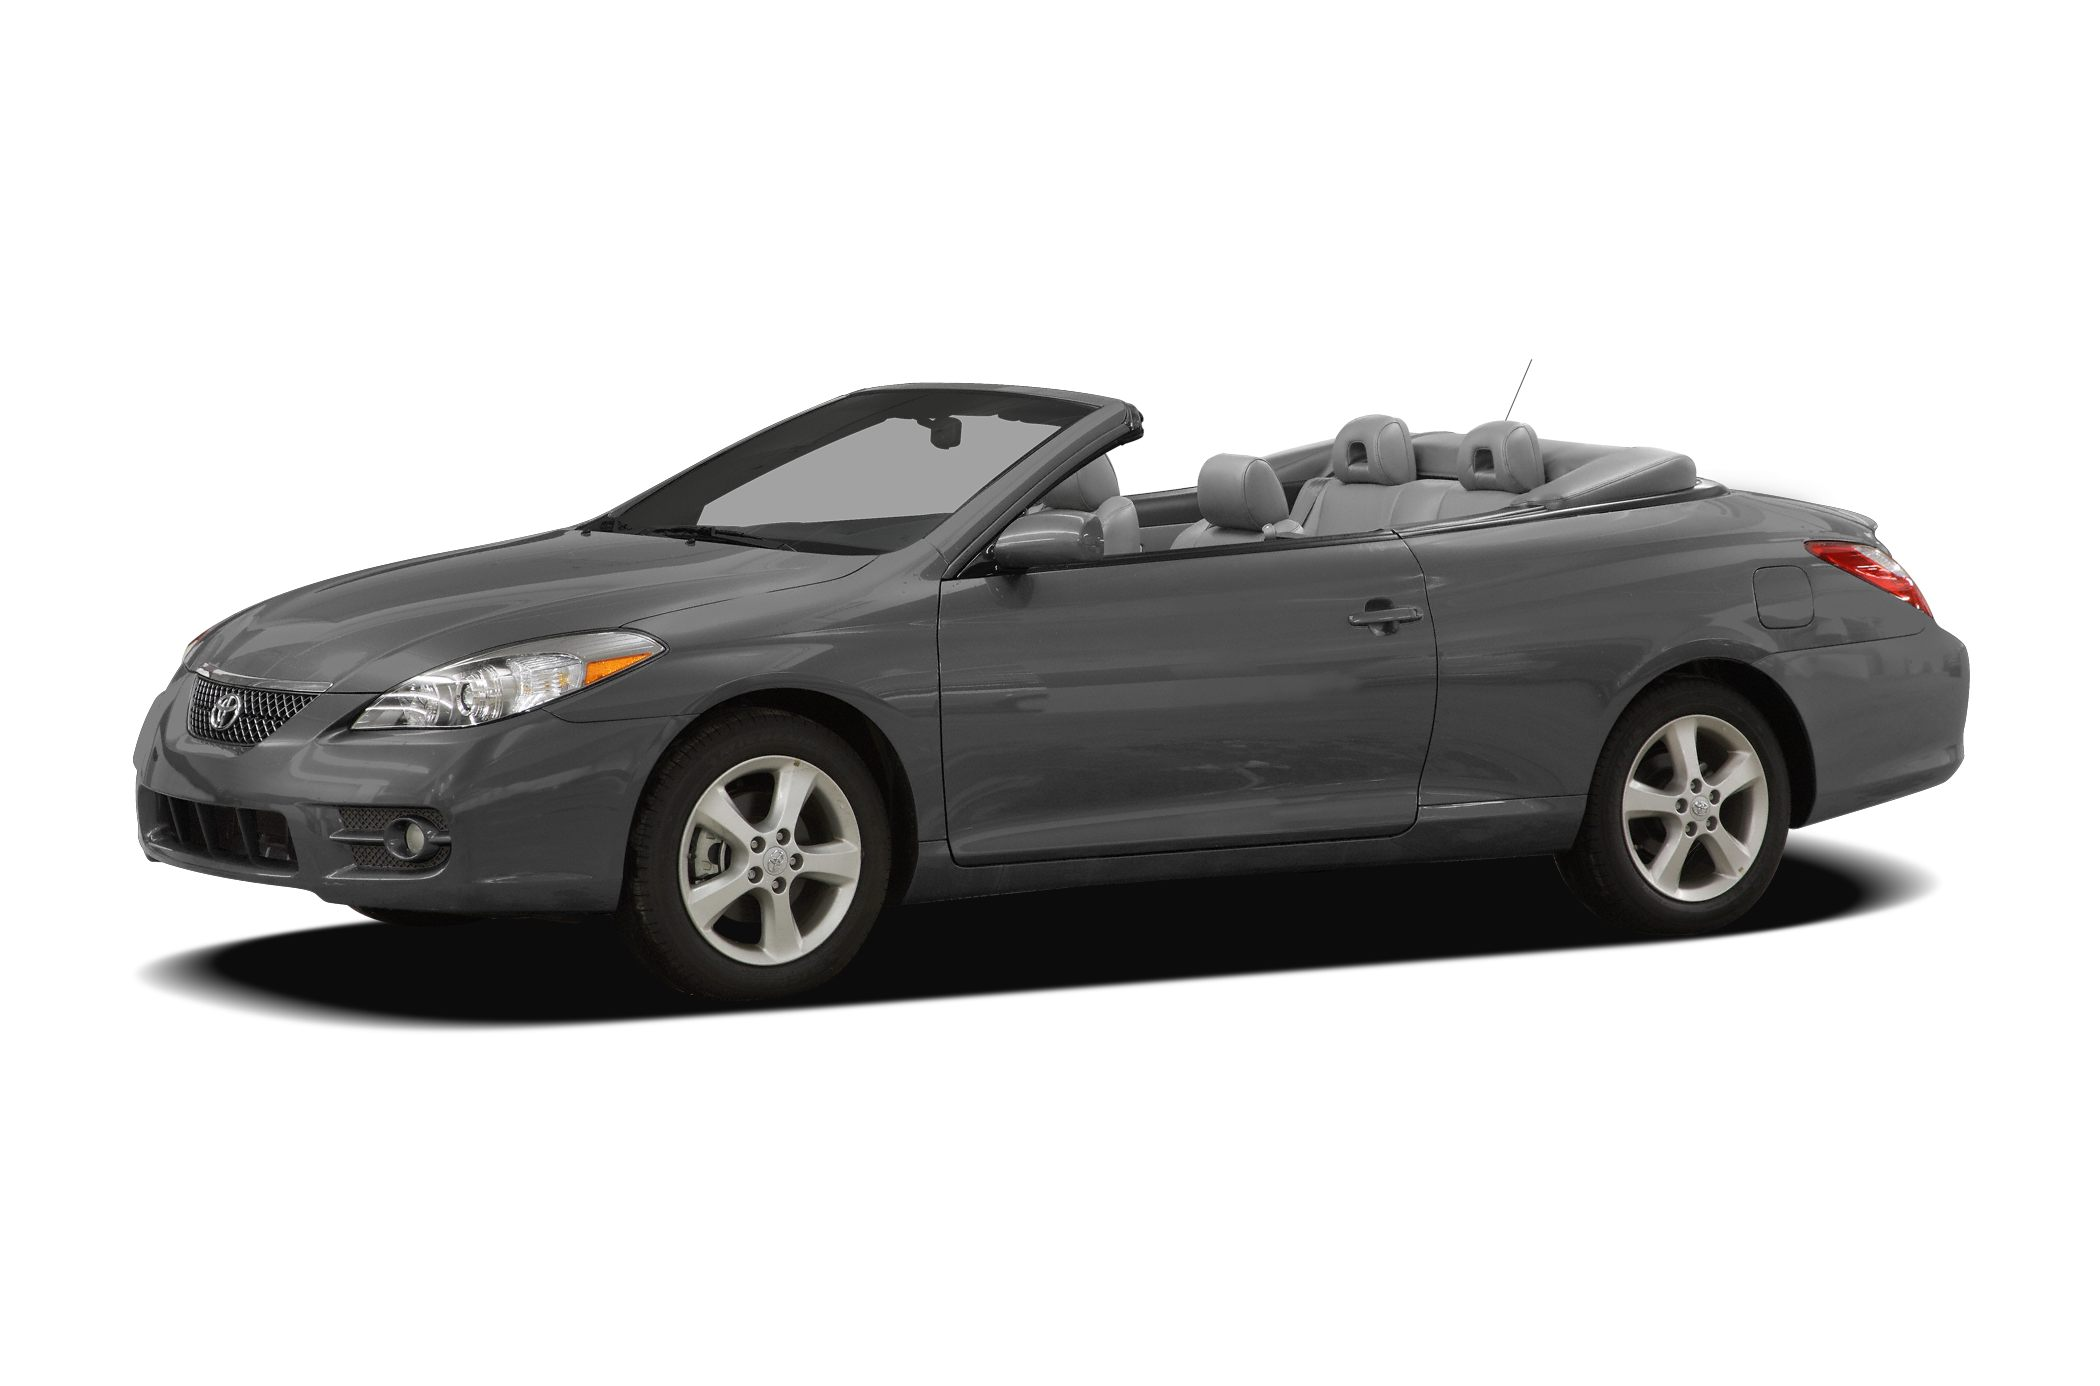 2008 Toyota Camry Solara SLE Convertible for sale in Fort Myers for $18,288 with 27,874 miles.